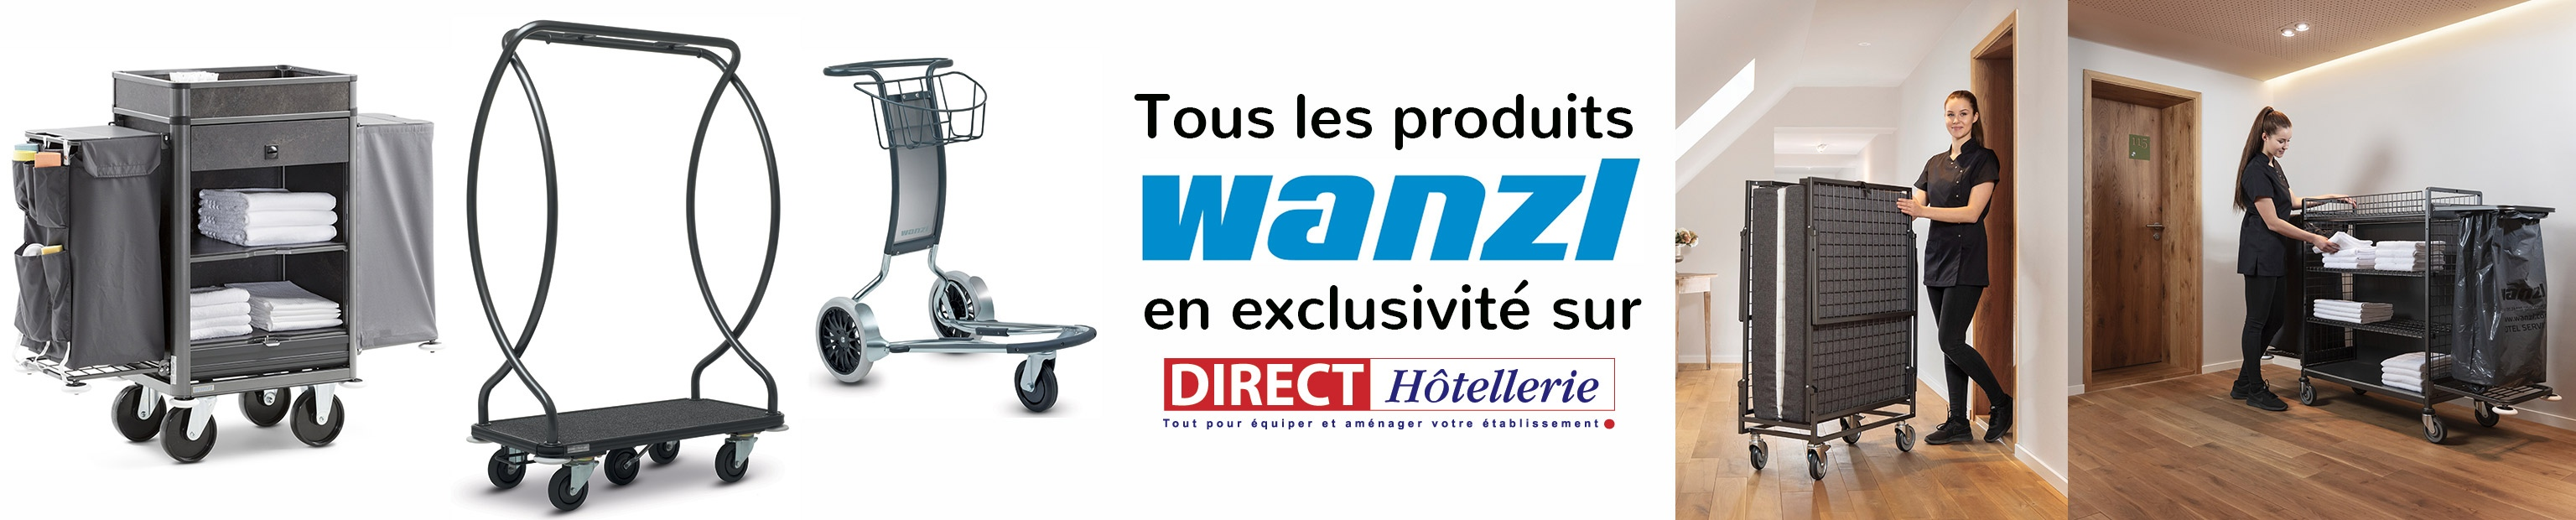 Direct Hôtellerie revendeur exclusif de Wanzl en France et Monaco